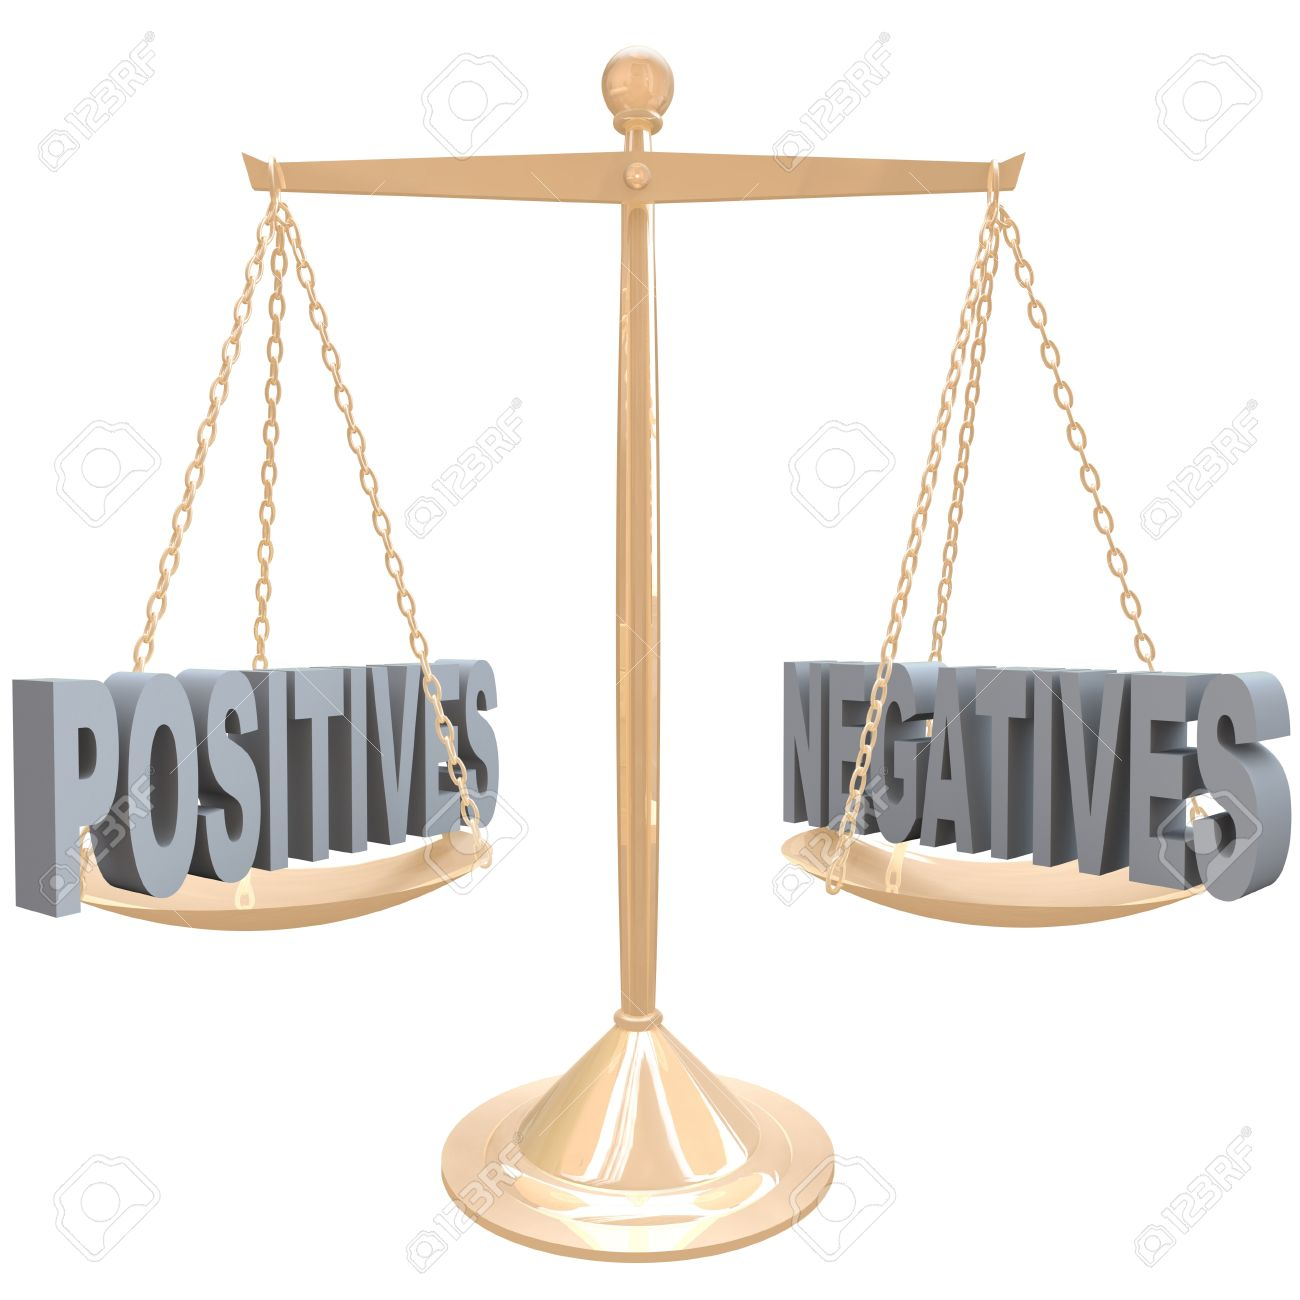 The words Positives and Negatives on opposite sides on a gold metal scale, symbolizing the comparision of differences between two choices or options Stock Photo - 17674093